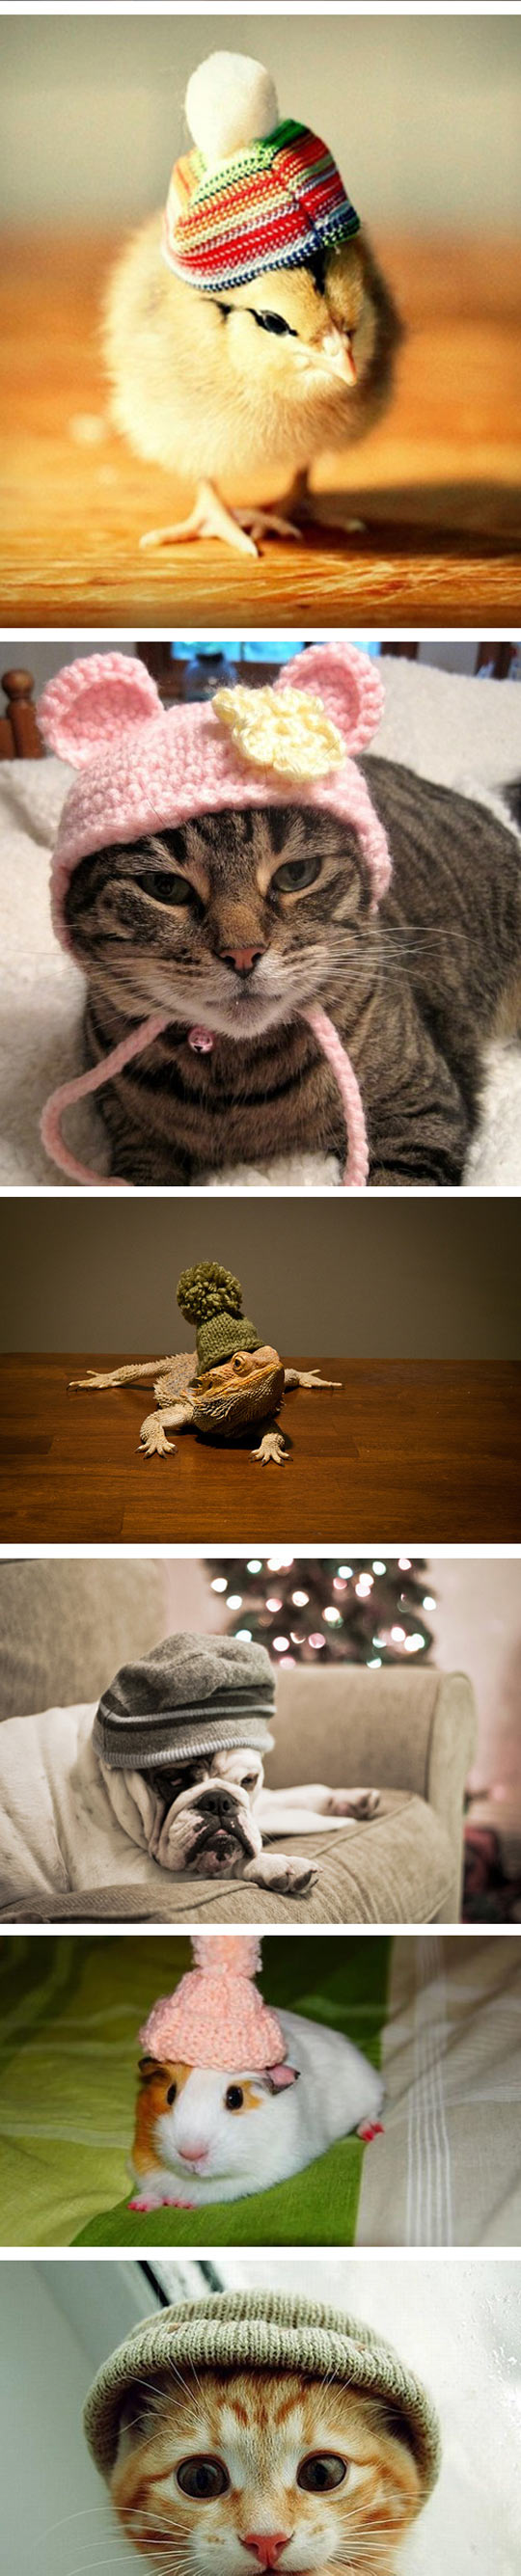 funny-animals-wearing-beanies-compilation-hipster-cat